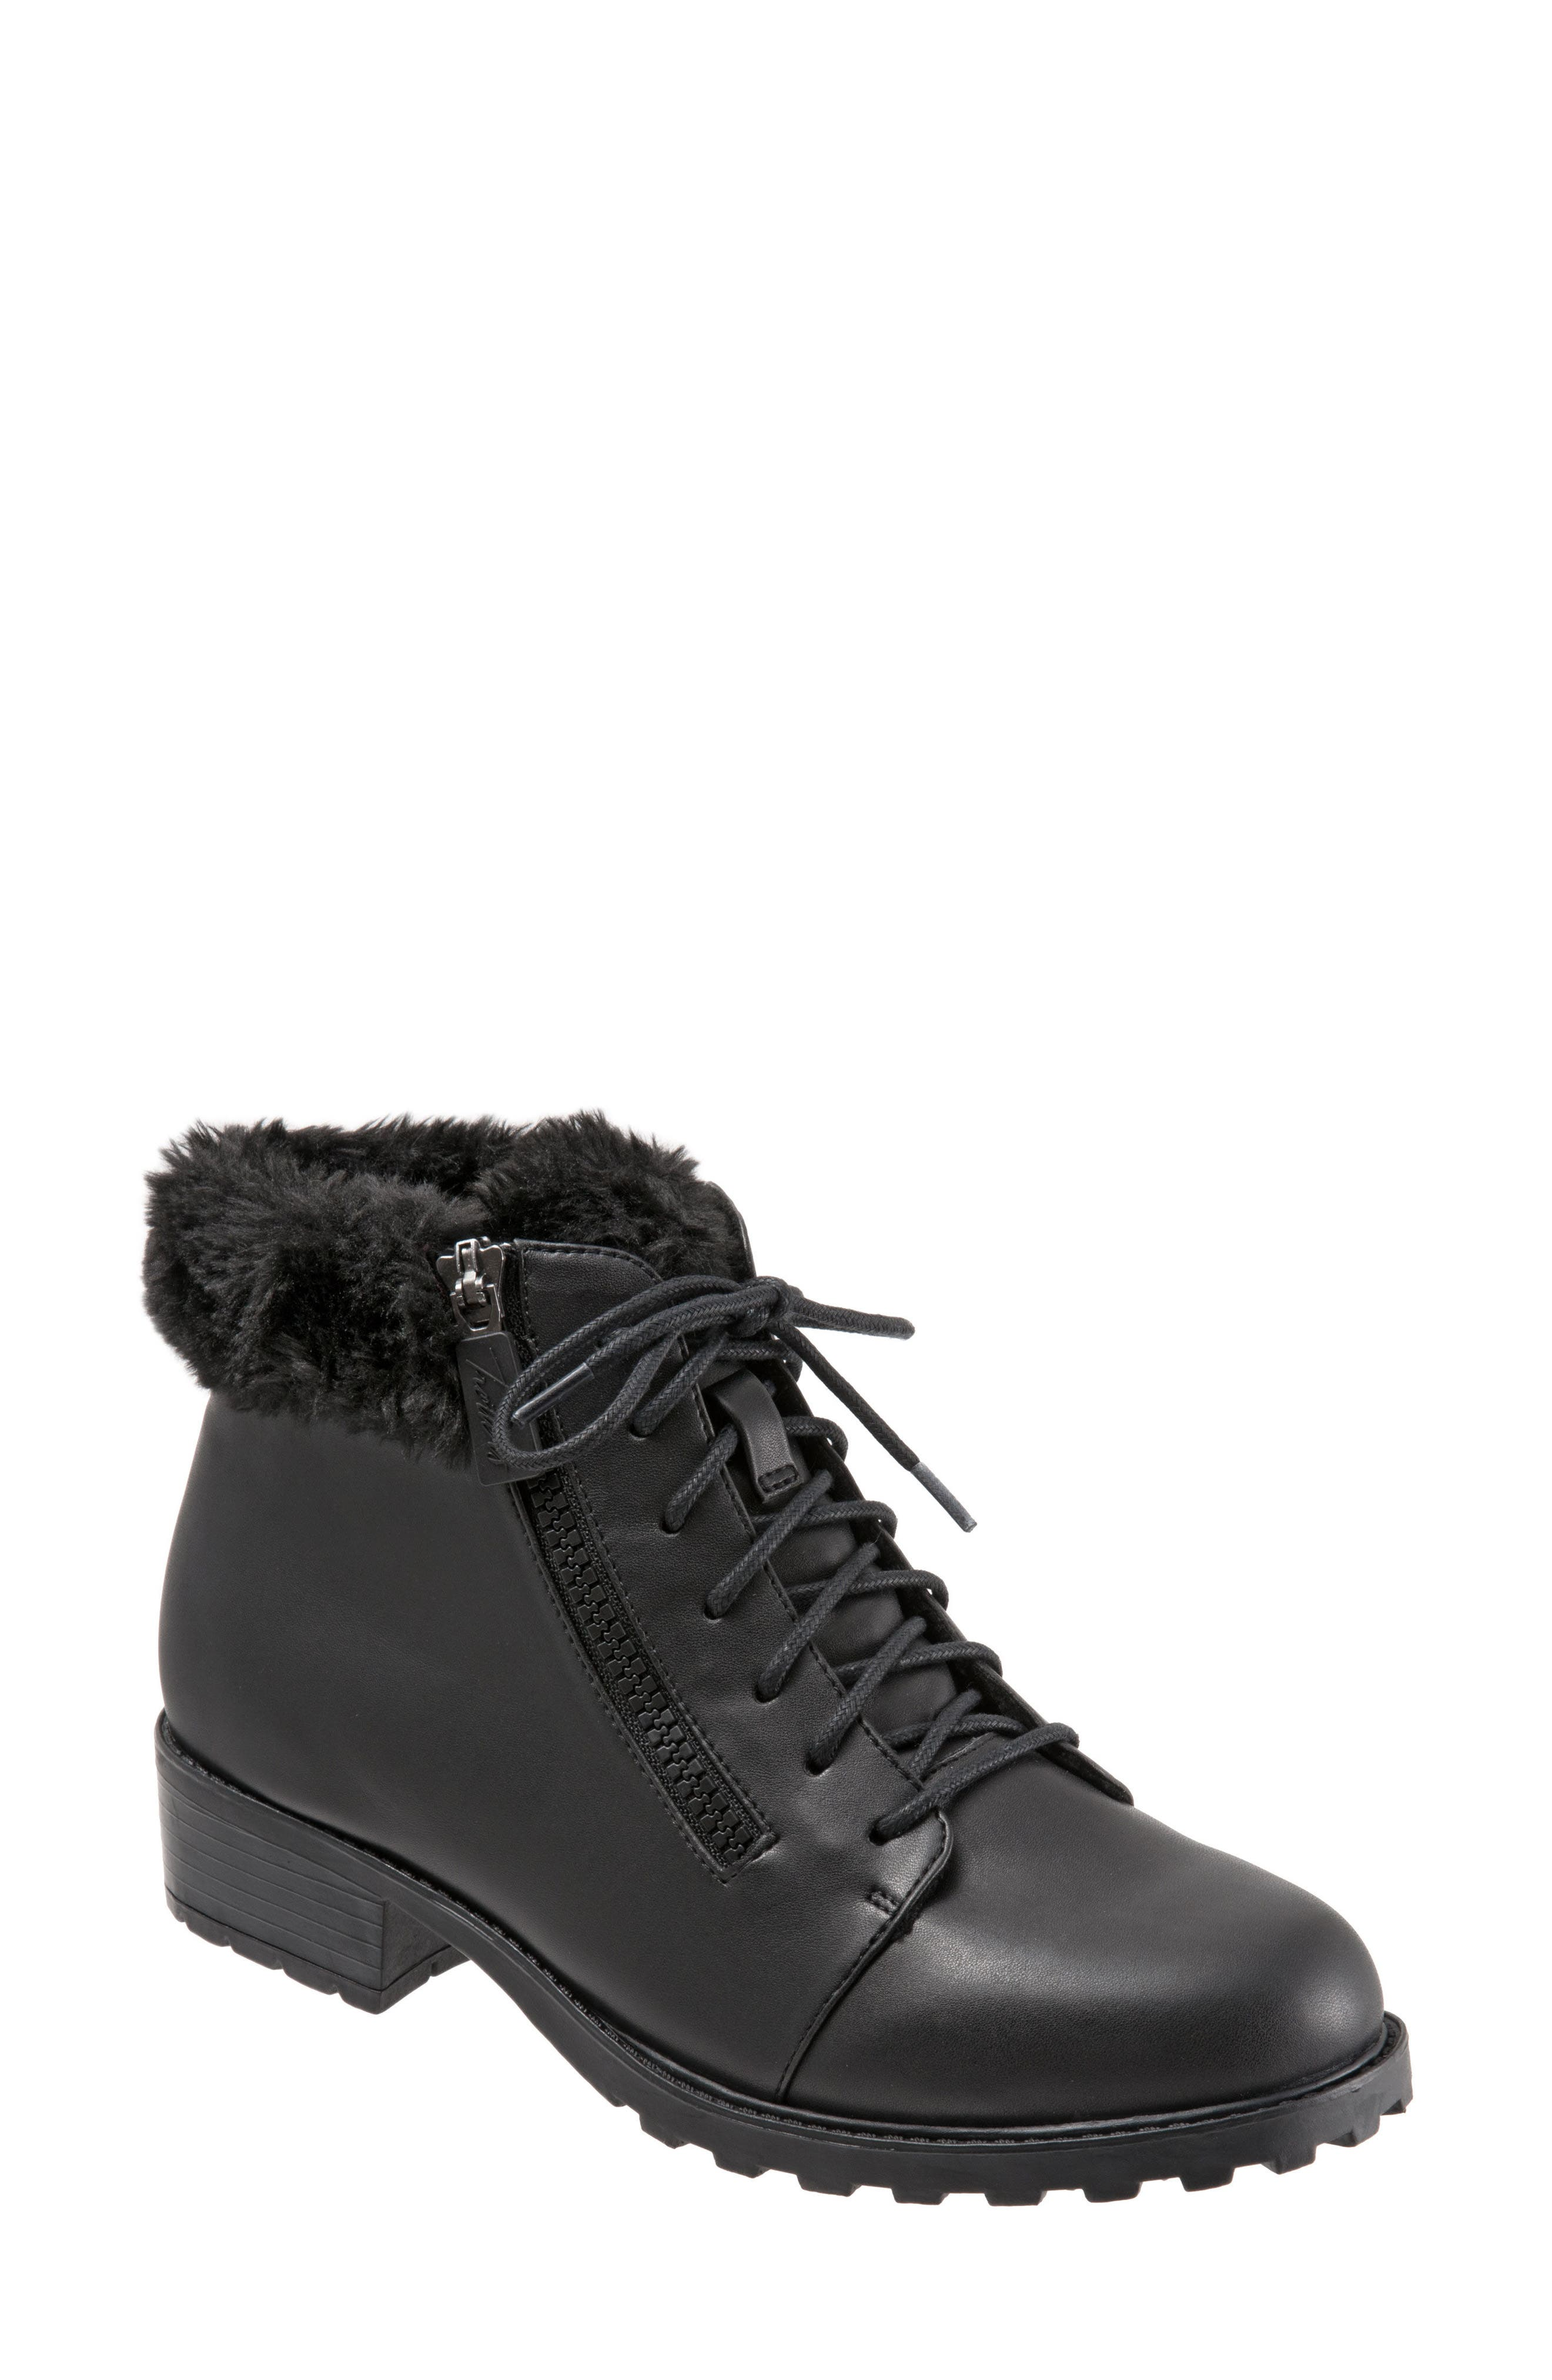 Trotters Below Zero Waterproof Winter Bootie